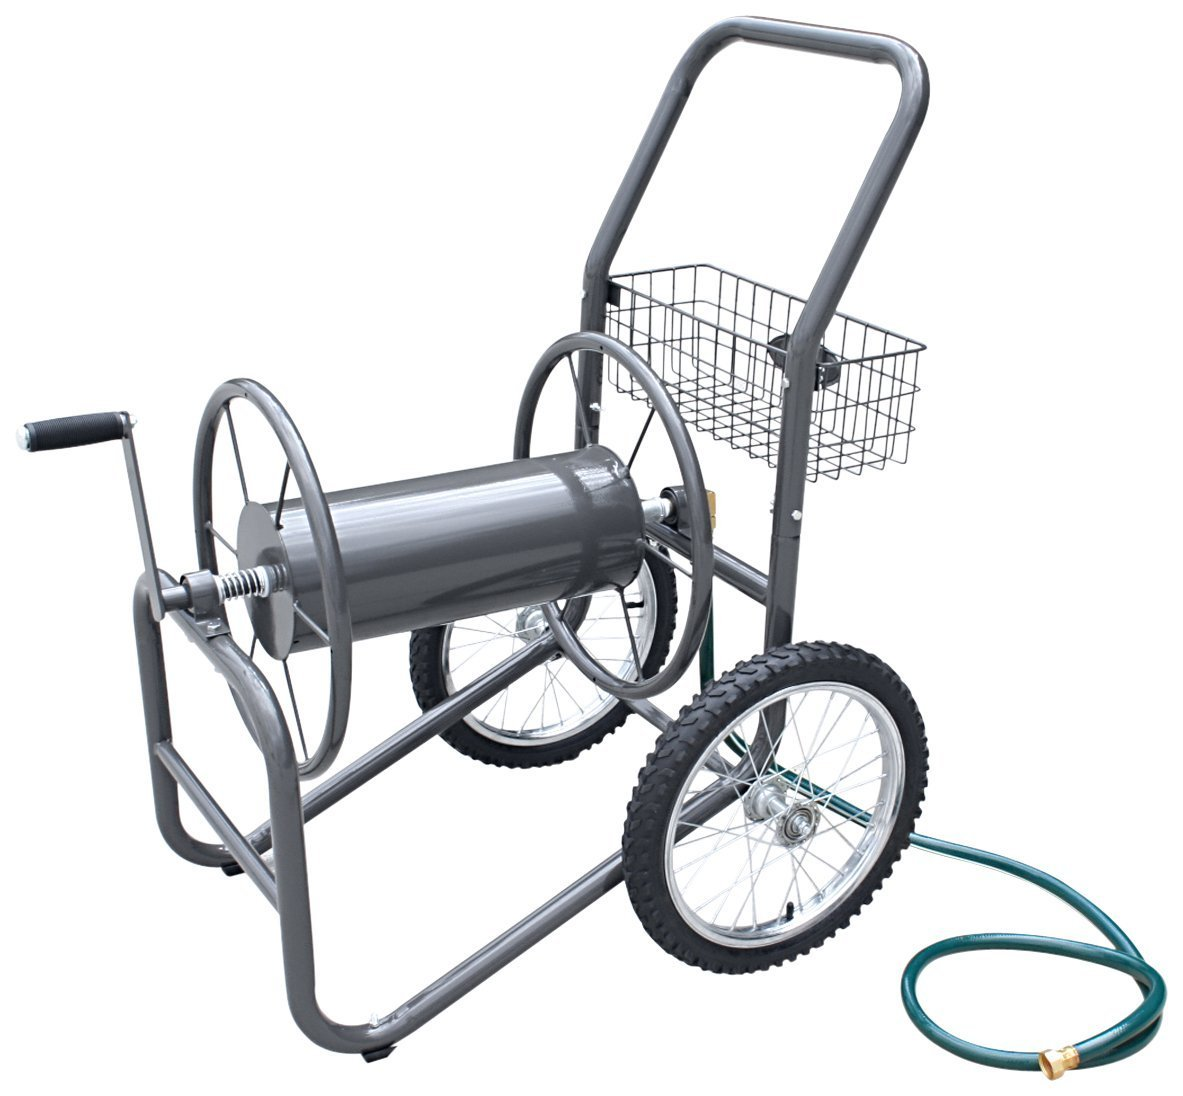 Liberty Garden Products 880-2 2-Wheel Garden Hose Reel Cart